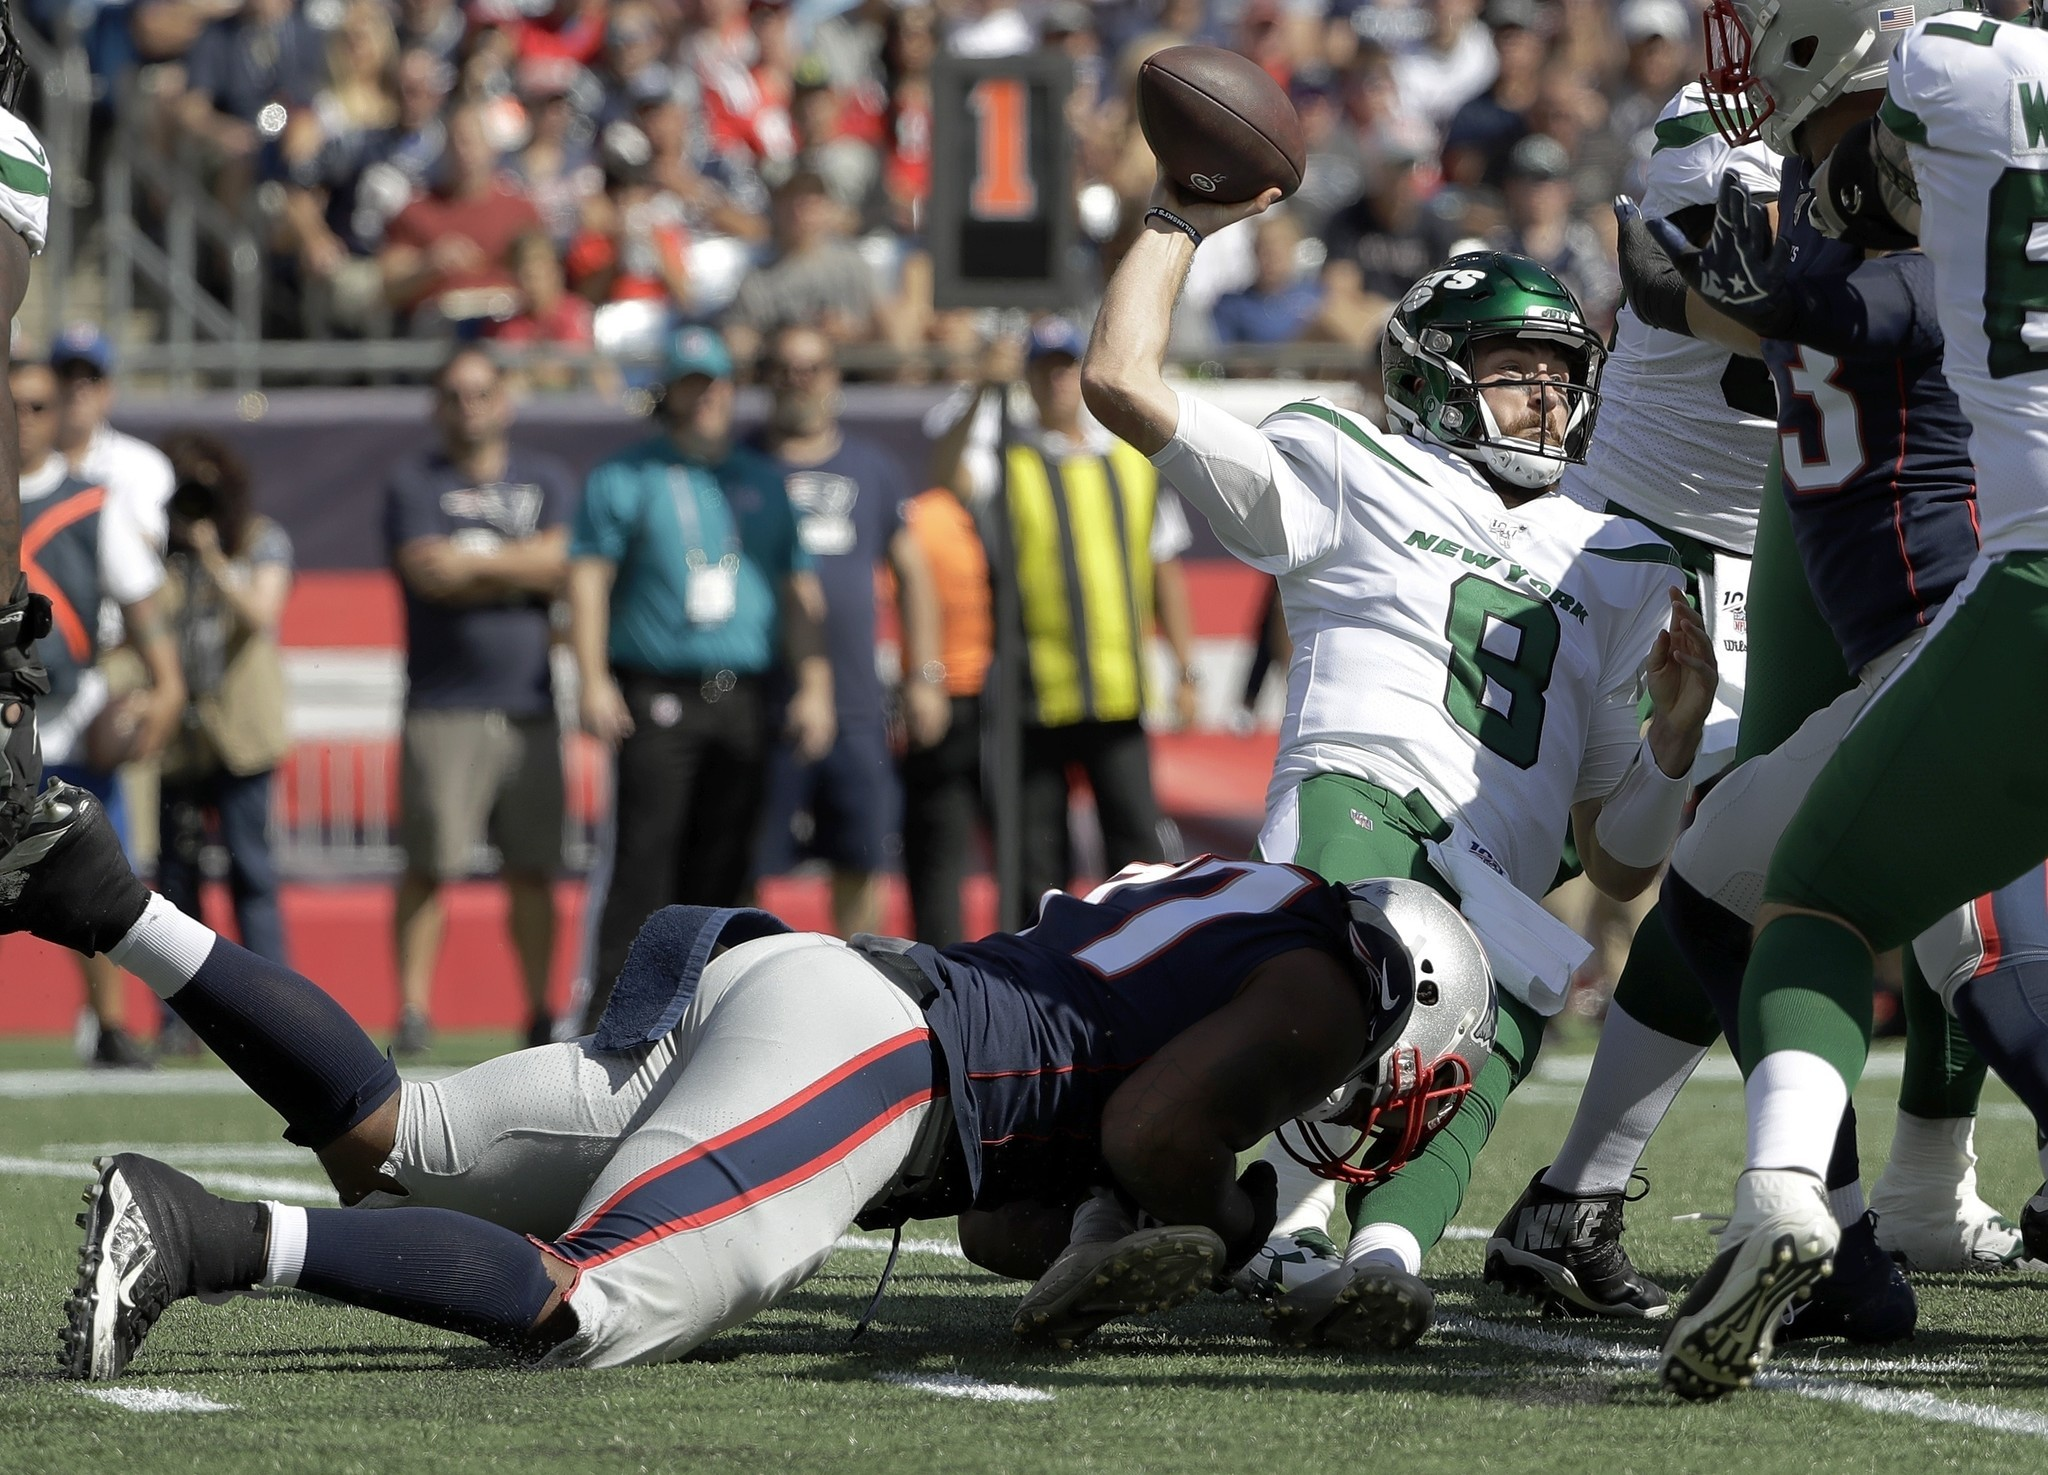 Are the Jets making a mistake by not fully preparing Luke Falk to start against the Eagles?